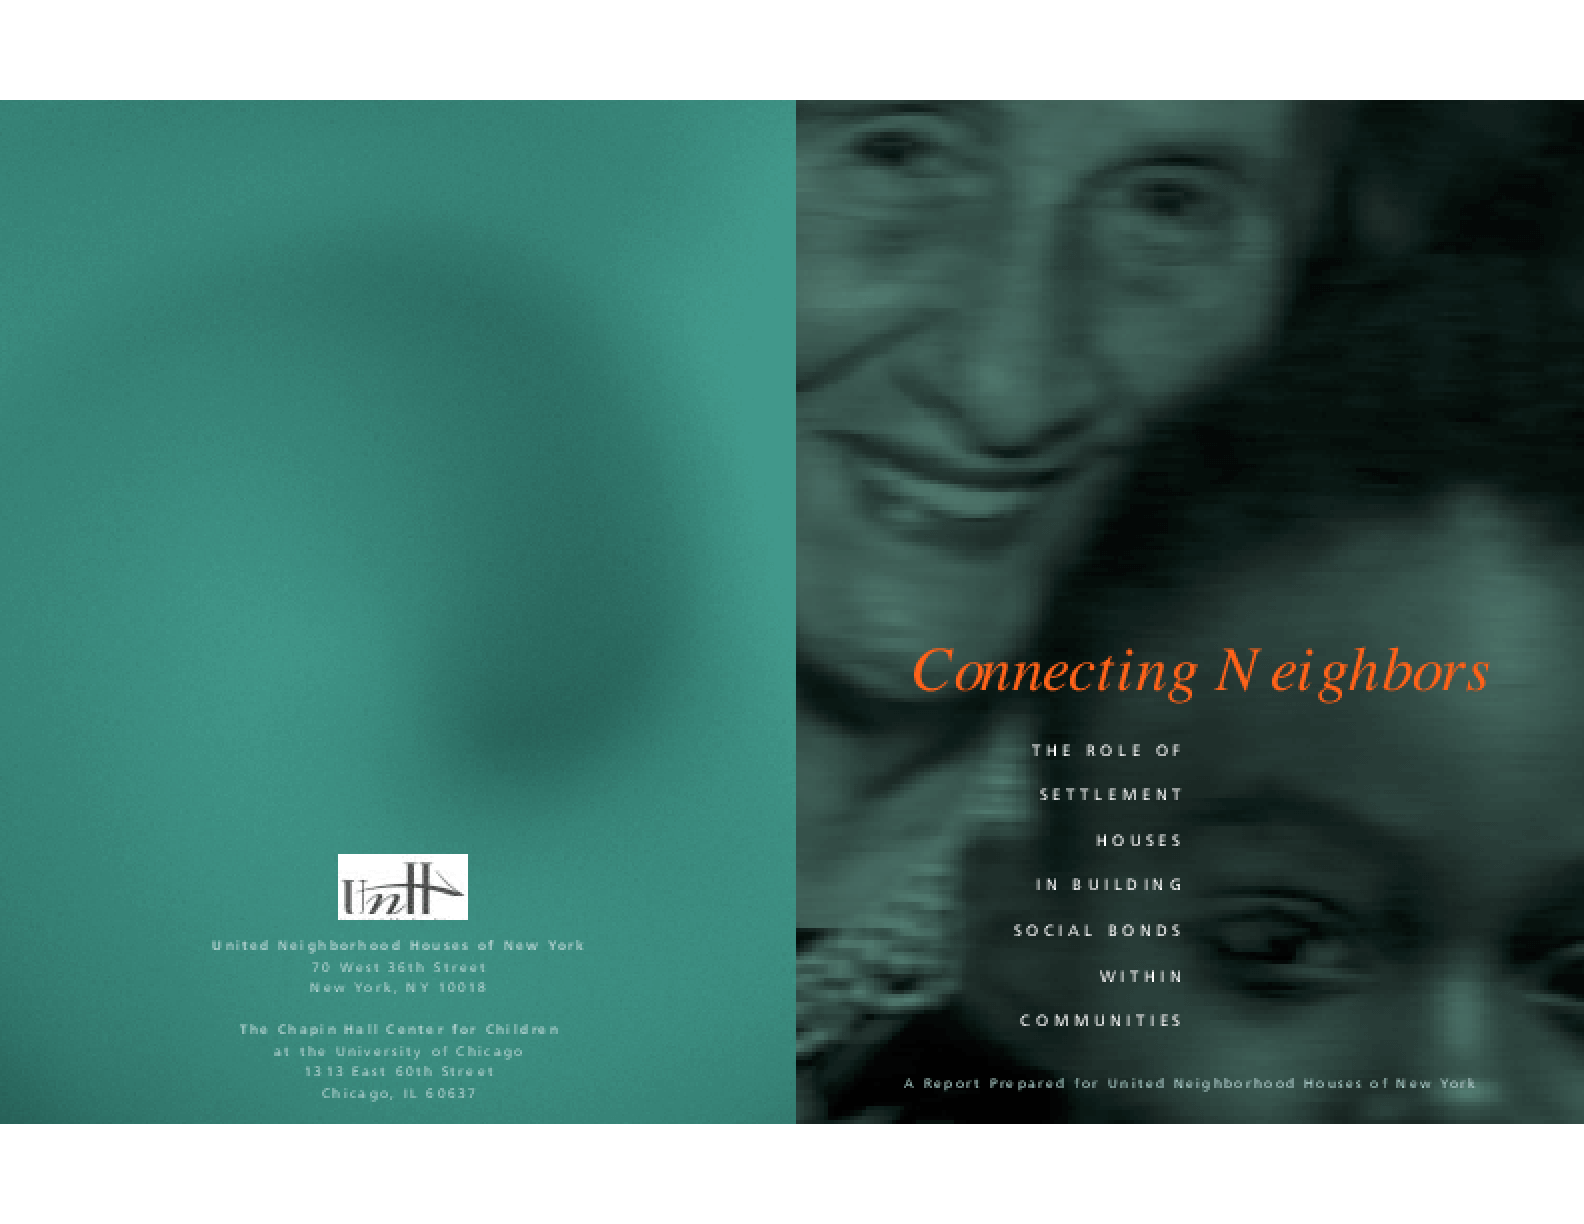 Connecting Neighbors: The Role of Settlement Houses in Building Social Bonds With Communities